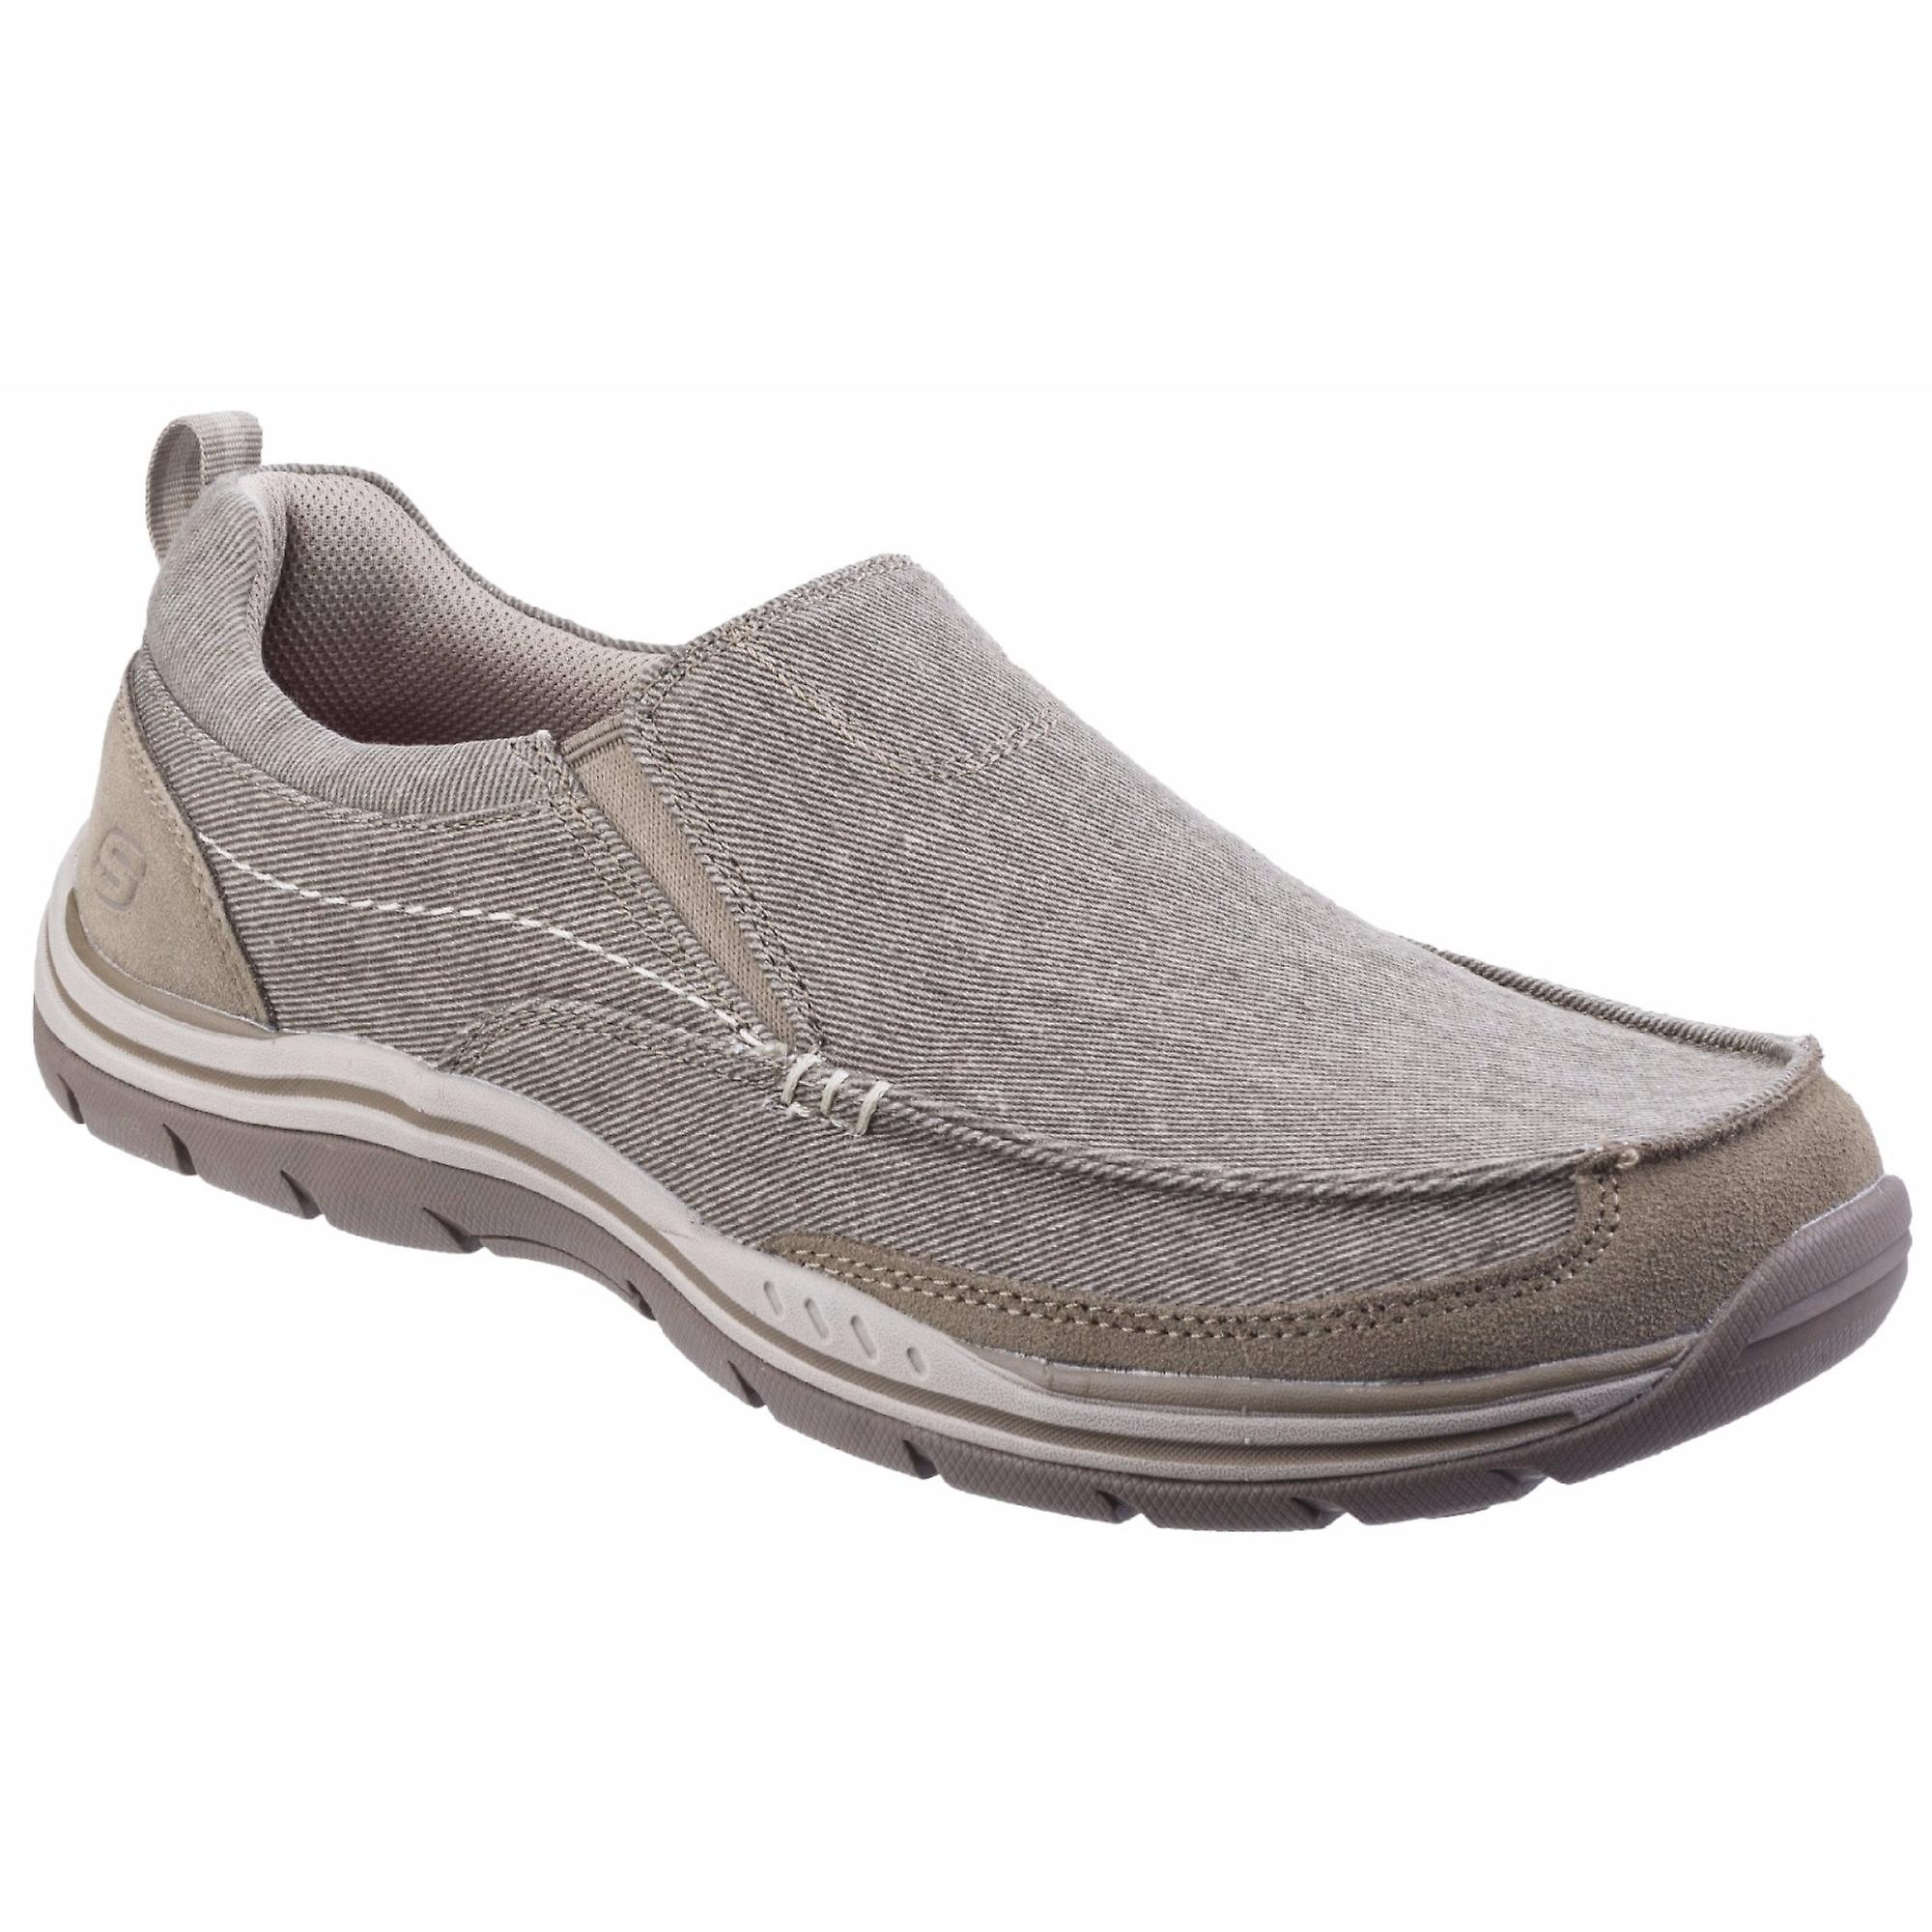 Skechers Mens Expected Tomen Slip On Shoes